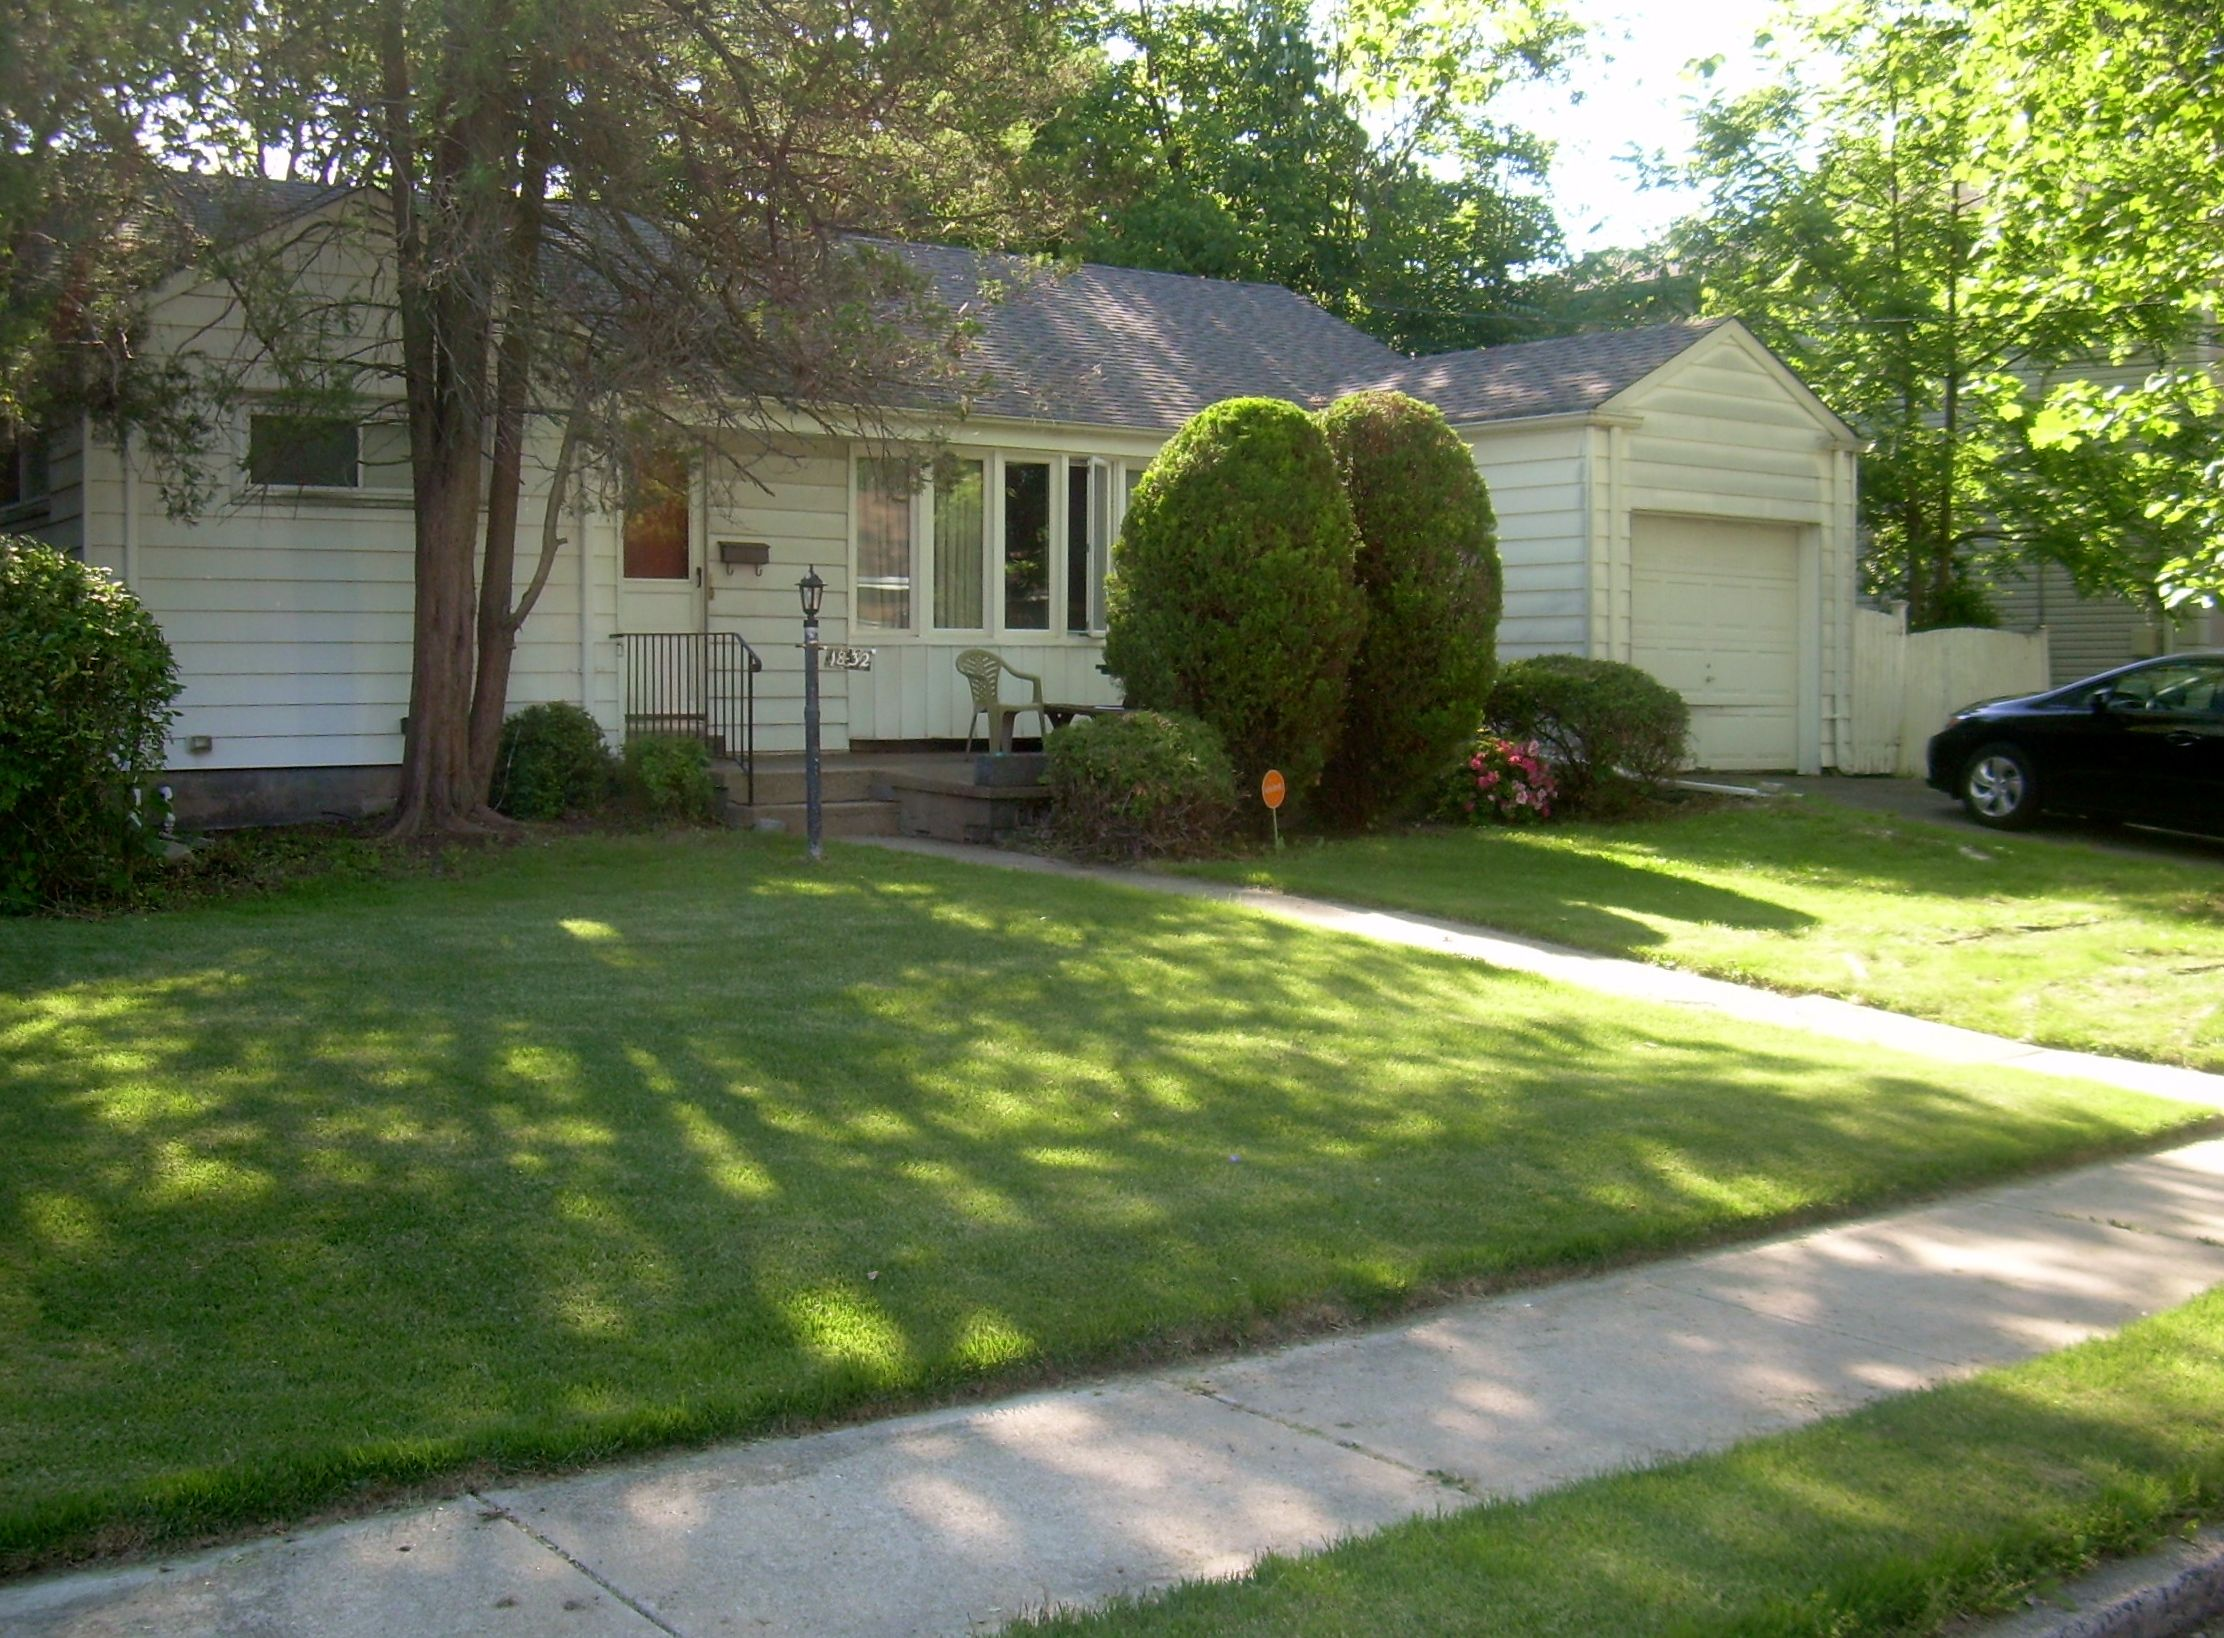 Awesome Lawn Business for Sale